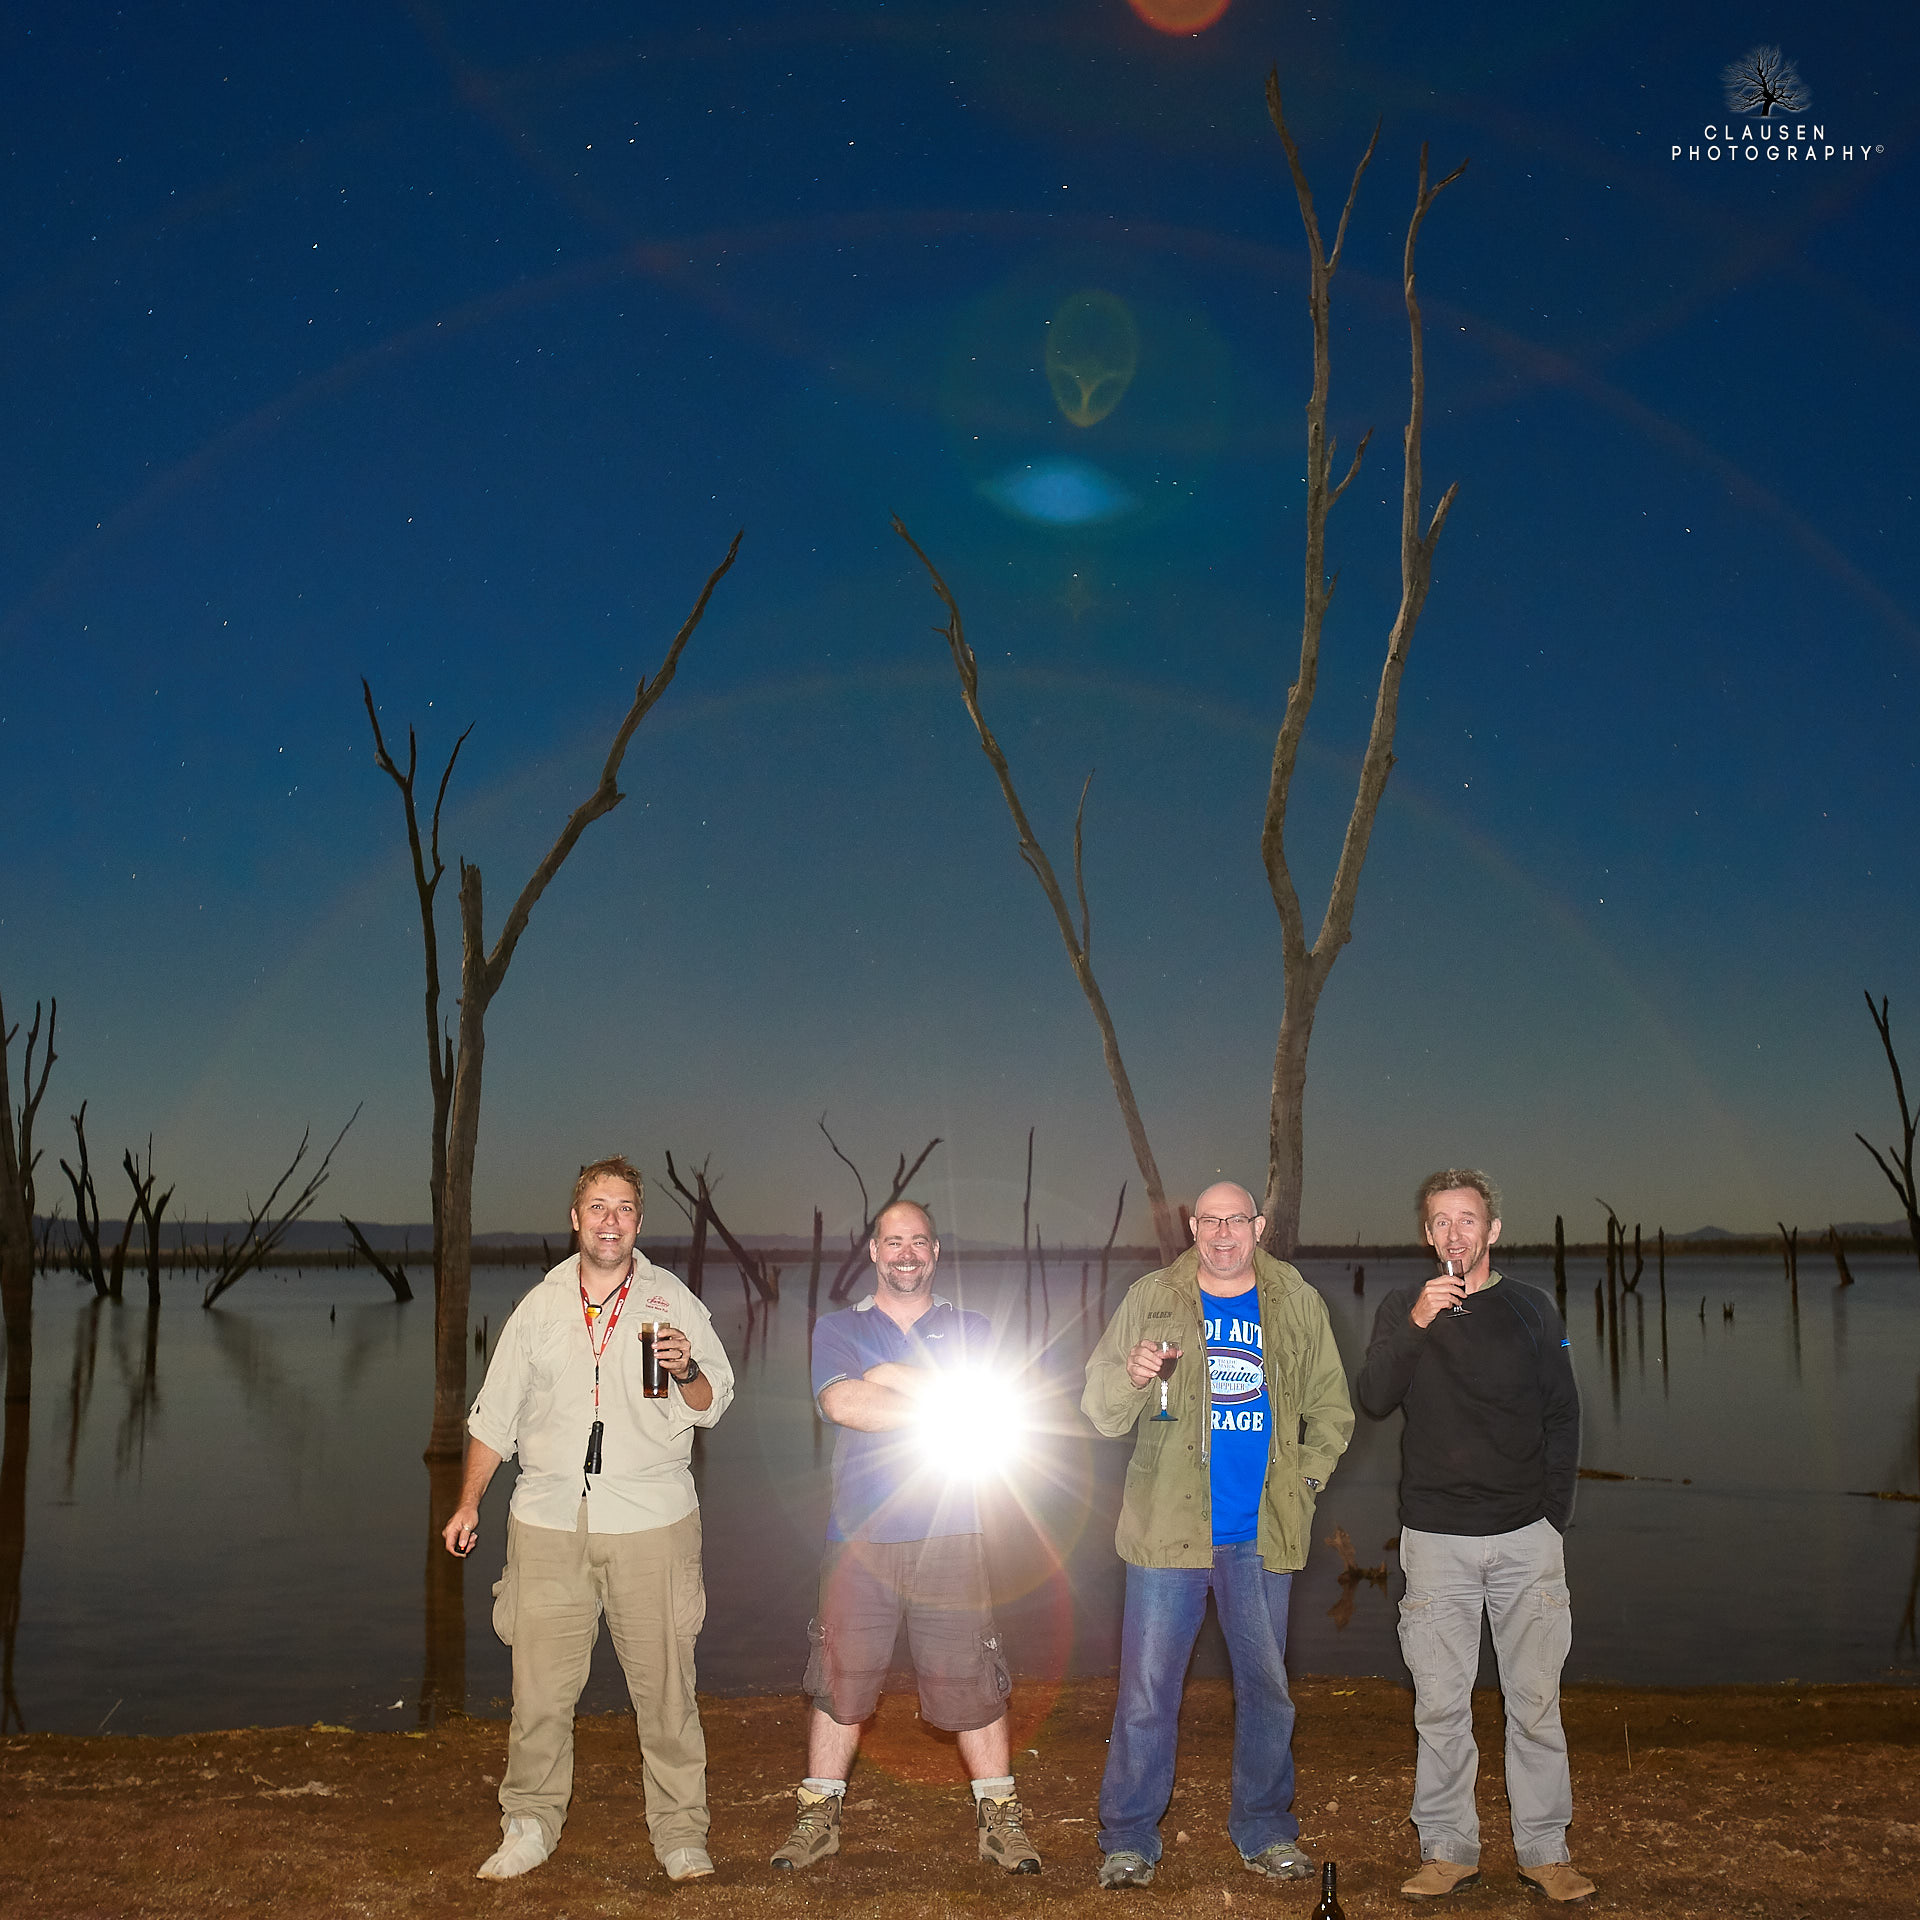 The Alien - I love getting away on photography trips with my mates. How good is that lens flare.P.s. forgot blue couch.